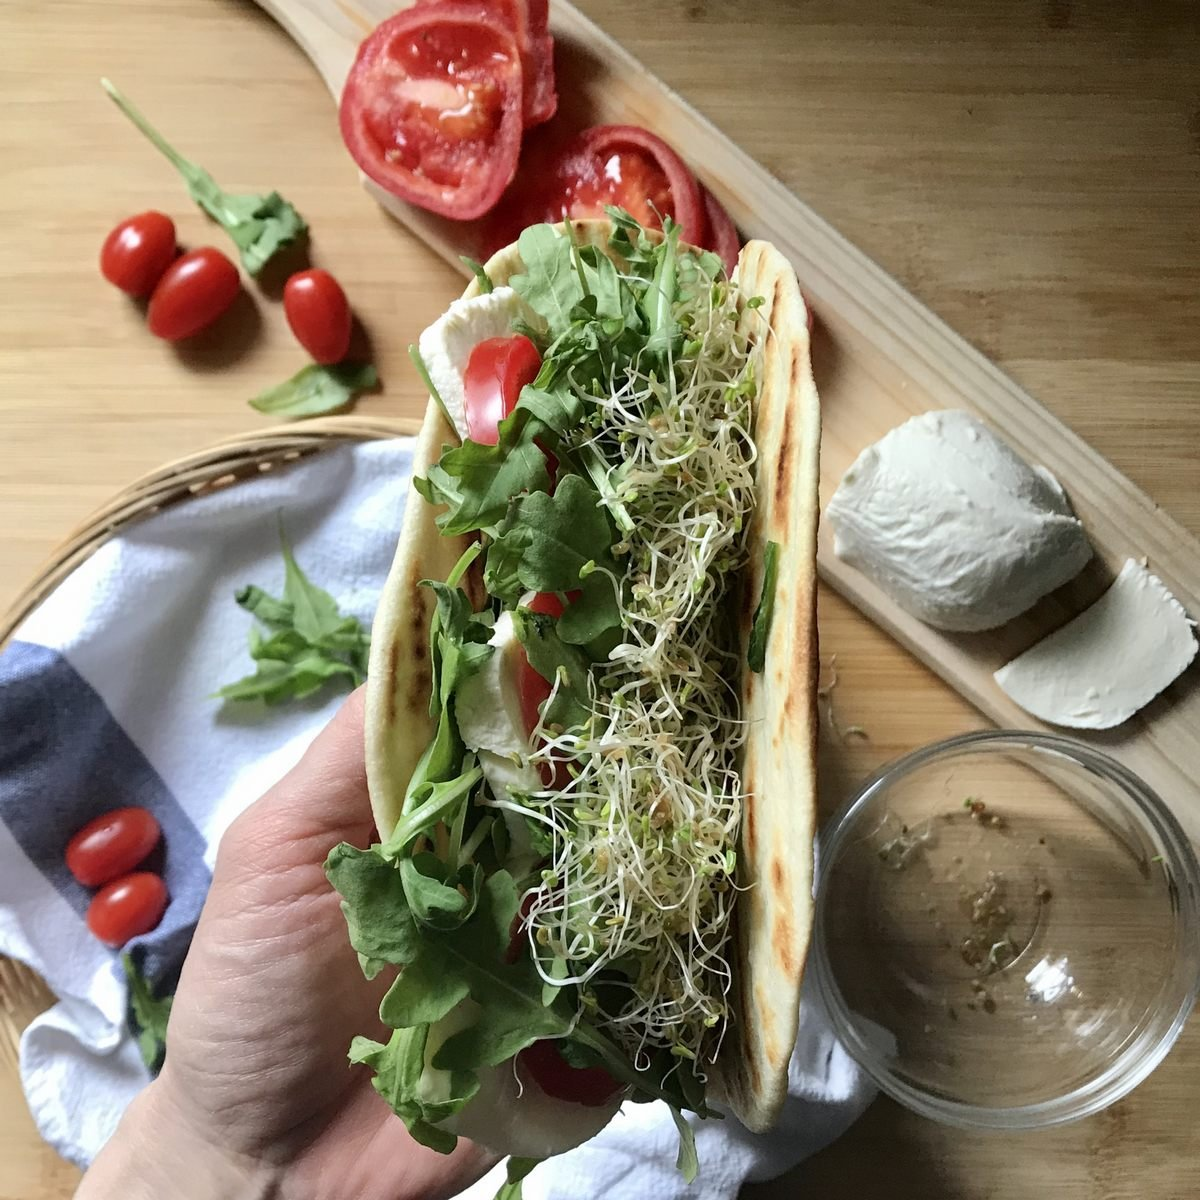 A hand held Italian flatbread with vegetables and alfalfa sprouts.